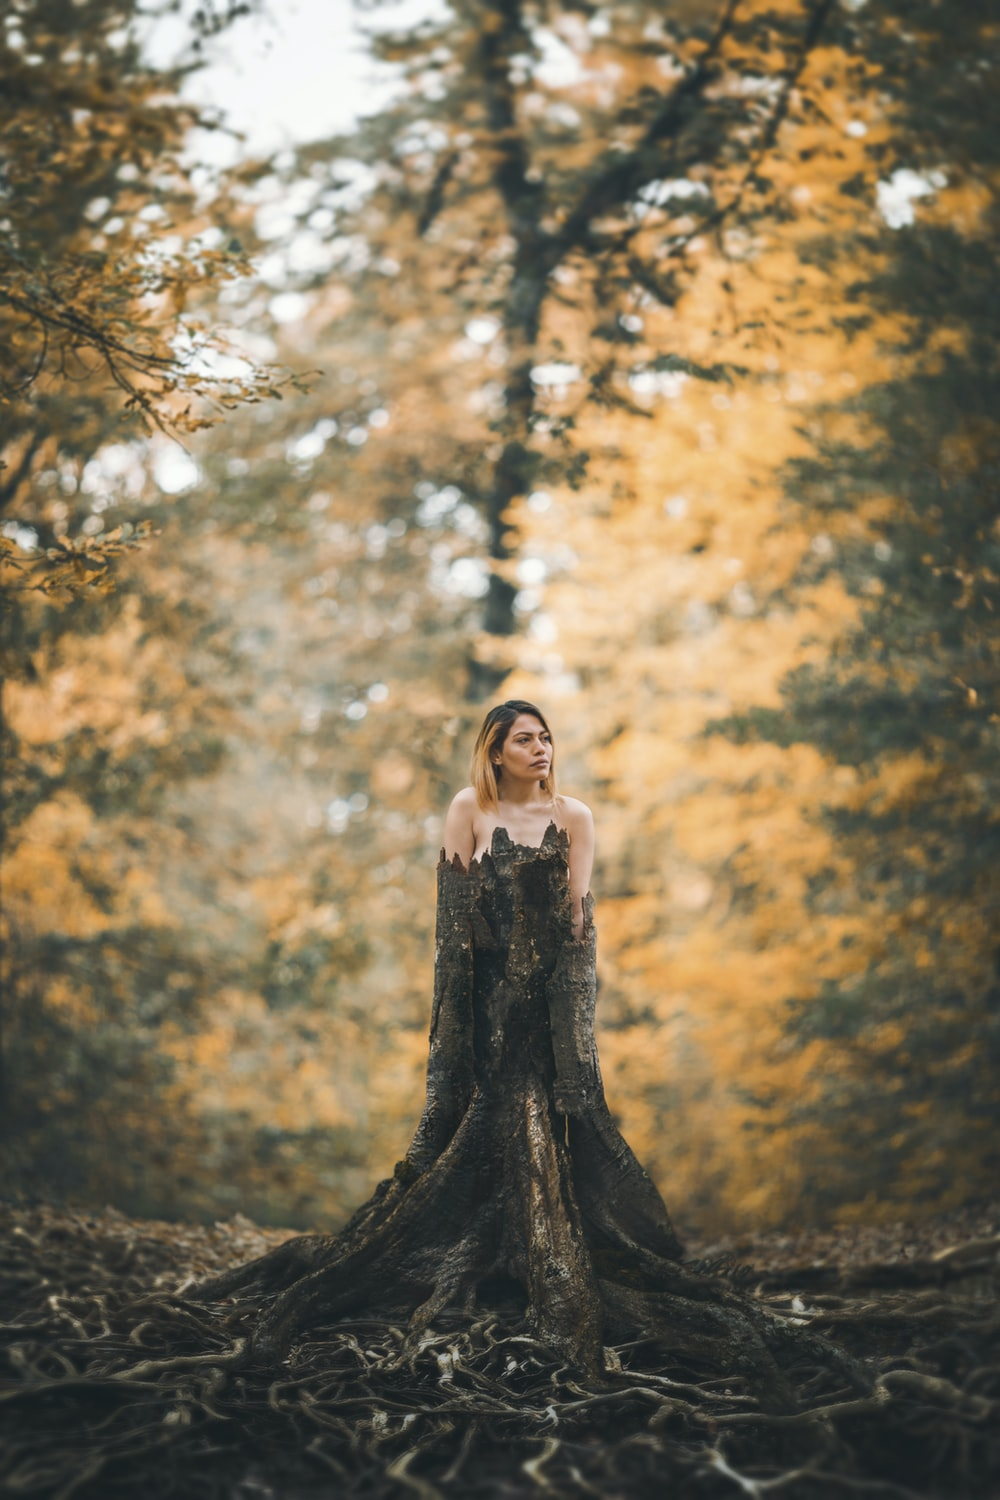 woman standing behind tree stump at forest